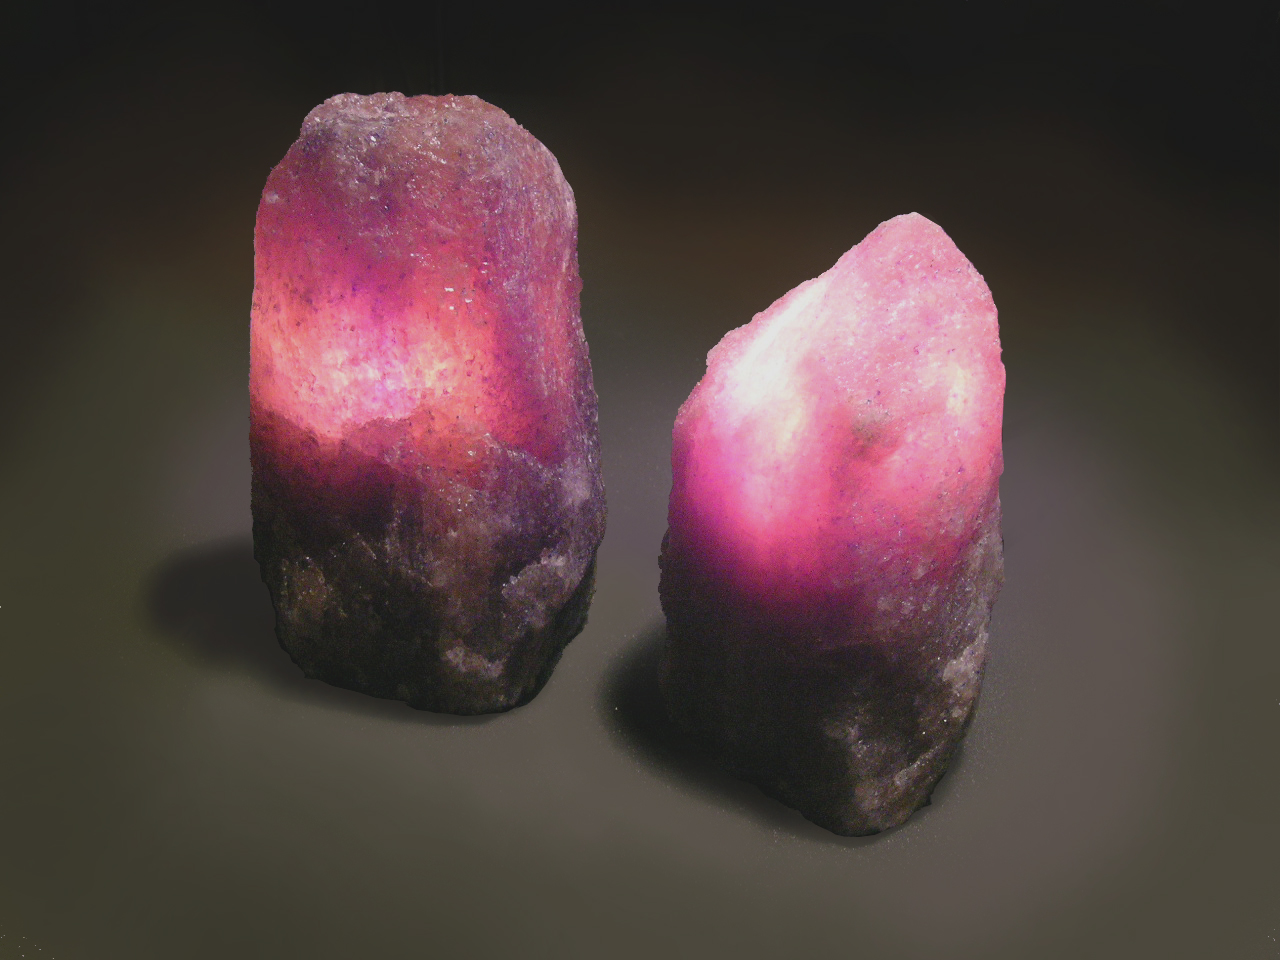 Salt Crystal Lamp Light Bulbs : Natural Salt Crystal Lamps Produce Healthy Negative Ions